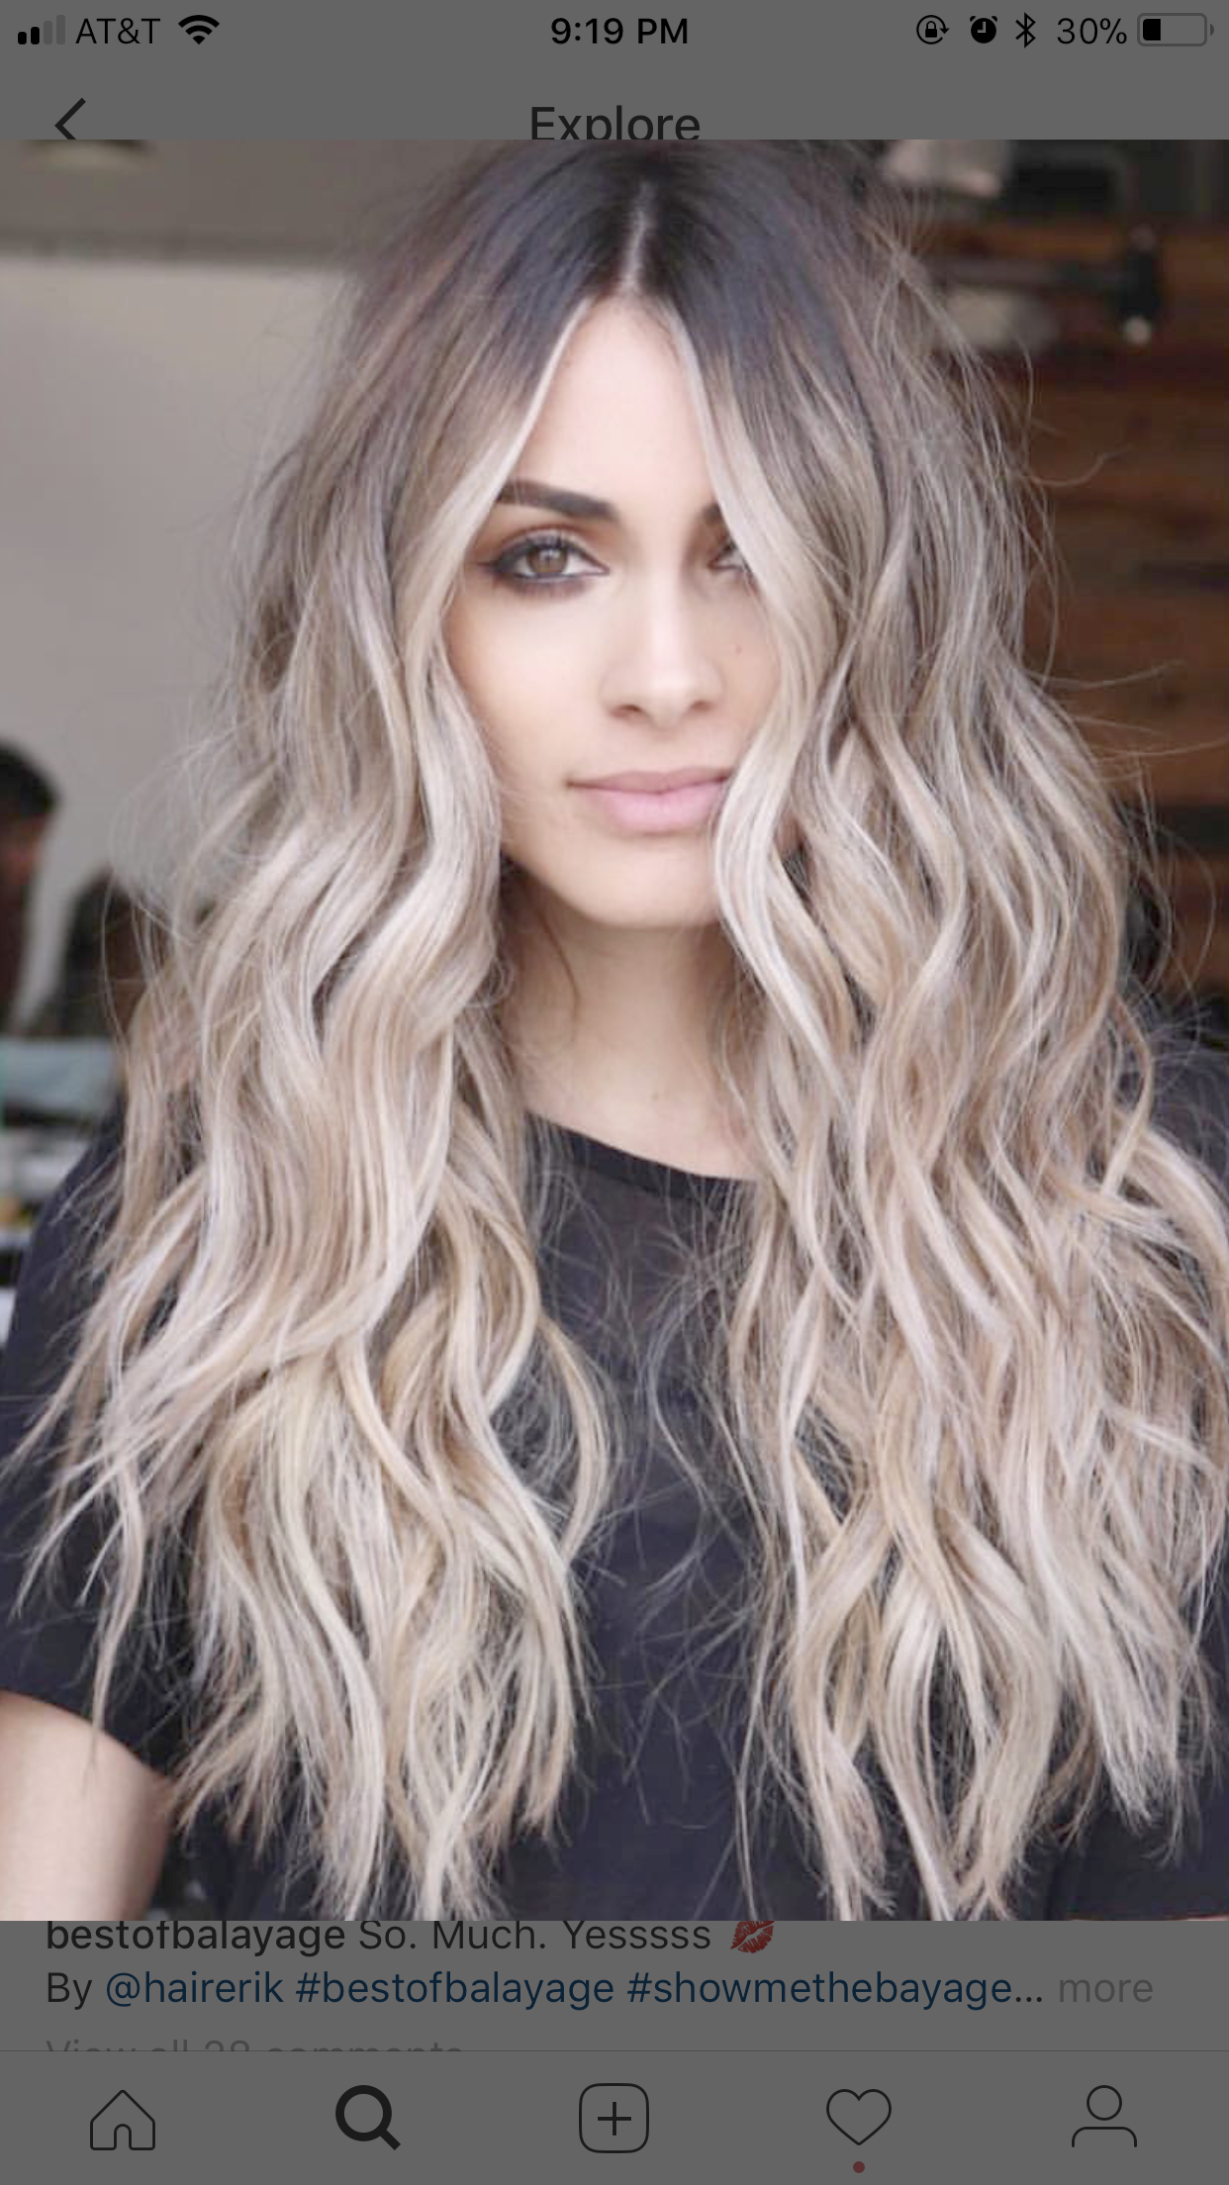 Haircut And Shave Over Hairless Cat Scary Much Hair Salon Near Me Great Clips Ponytail Ideas For Sports Blonde Hair Color Medium Hair Styles Brown Ombre Hair